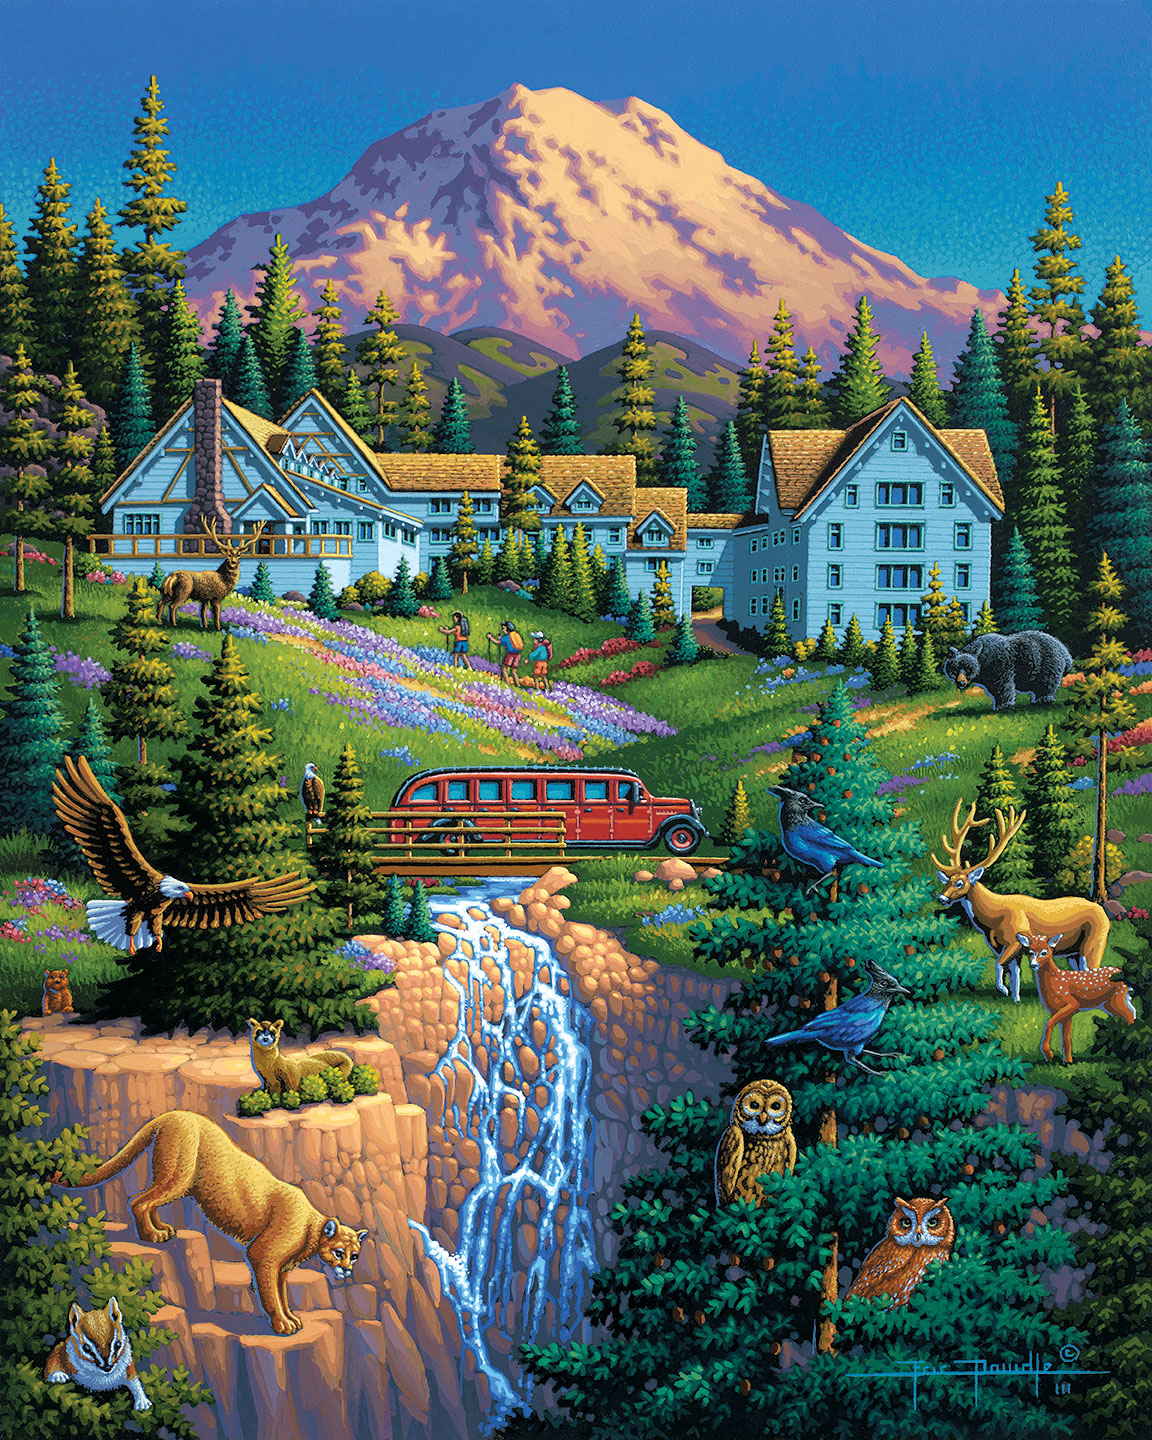 Mount Ranier National Park Mountains Jigsaw Puzzle